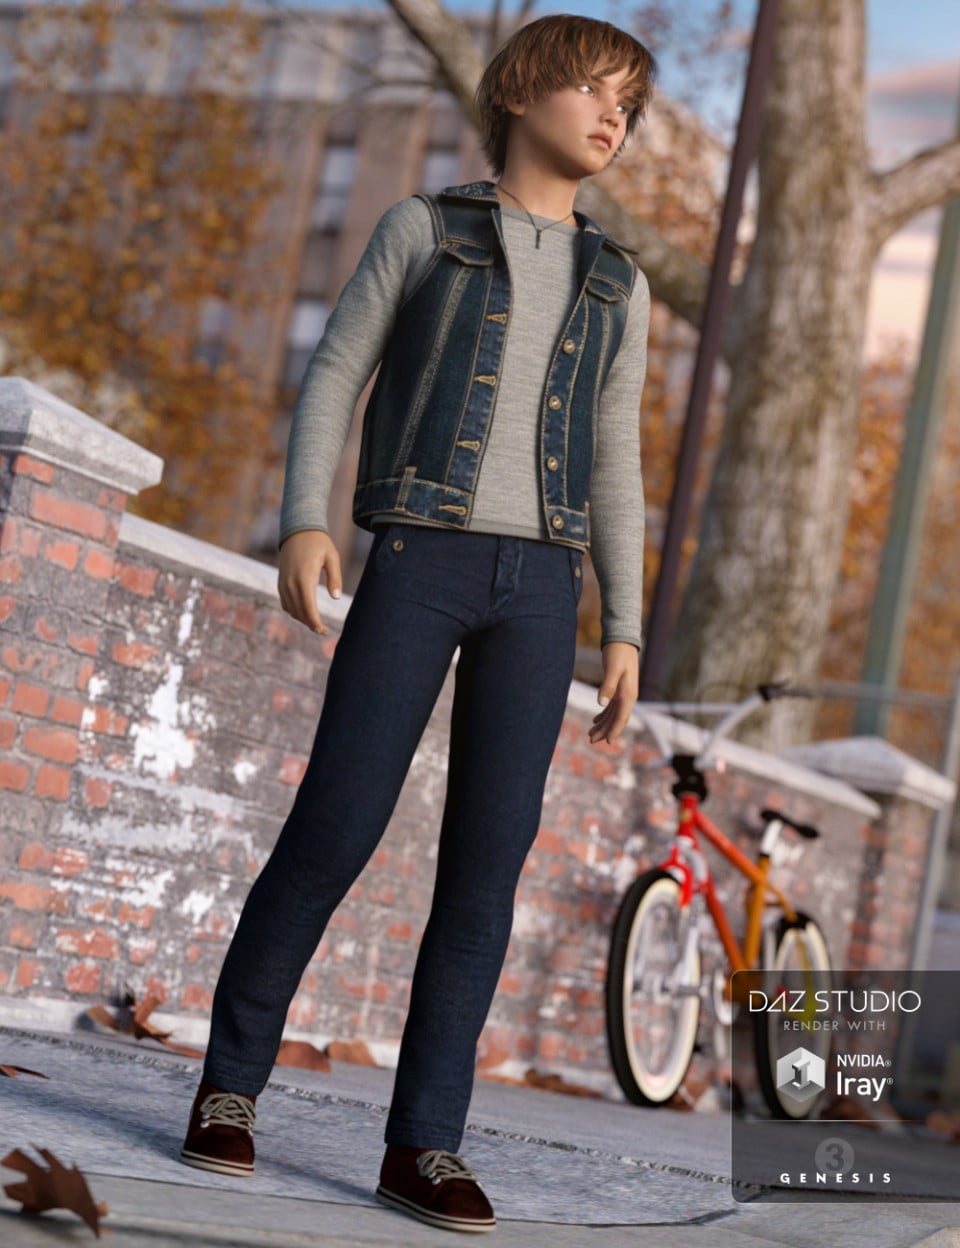 Everyday Casual Outfit for Genesis 3 Male(s)